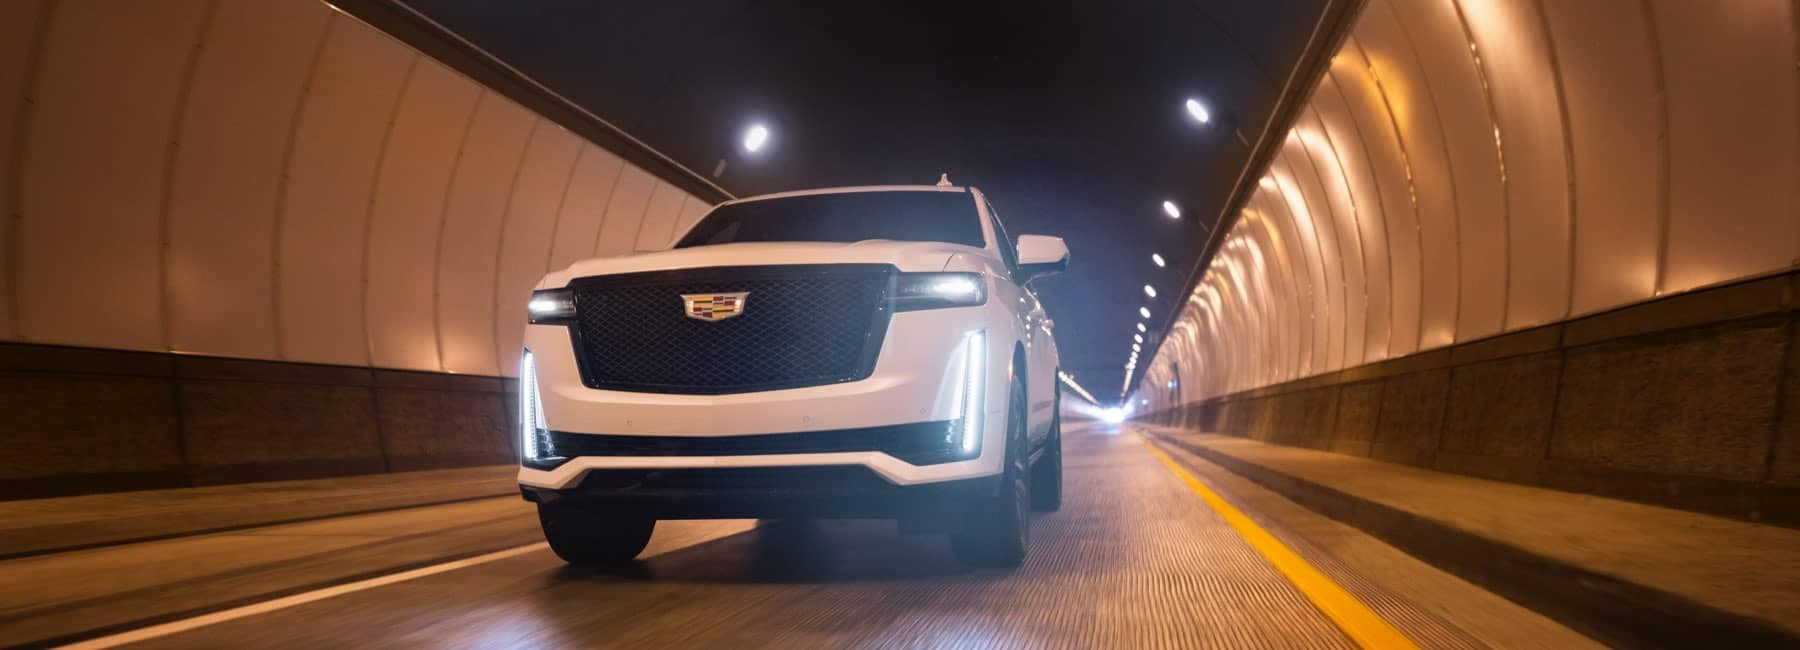 2021 Cadillac Escalade driving through tunnel